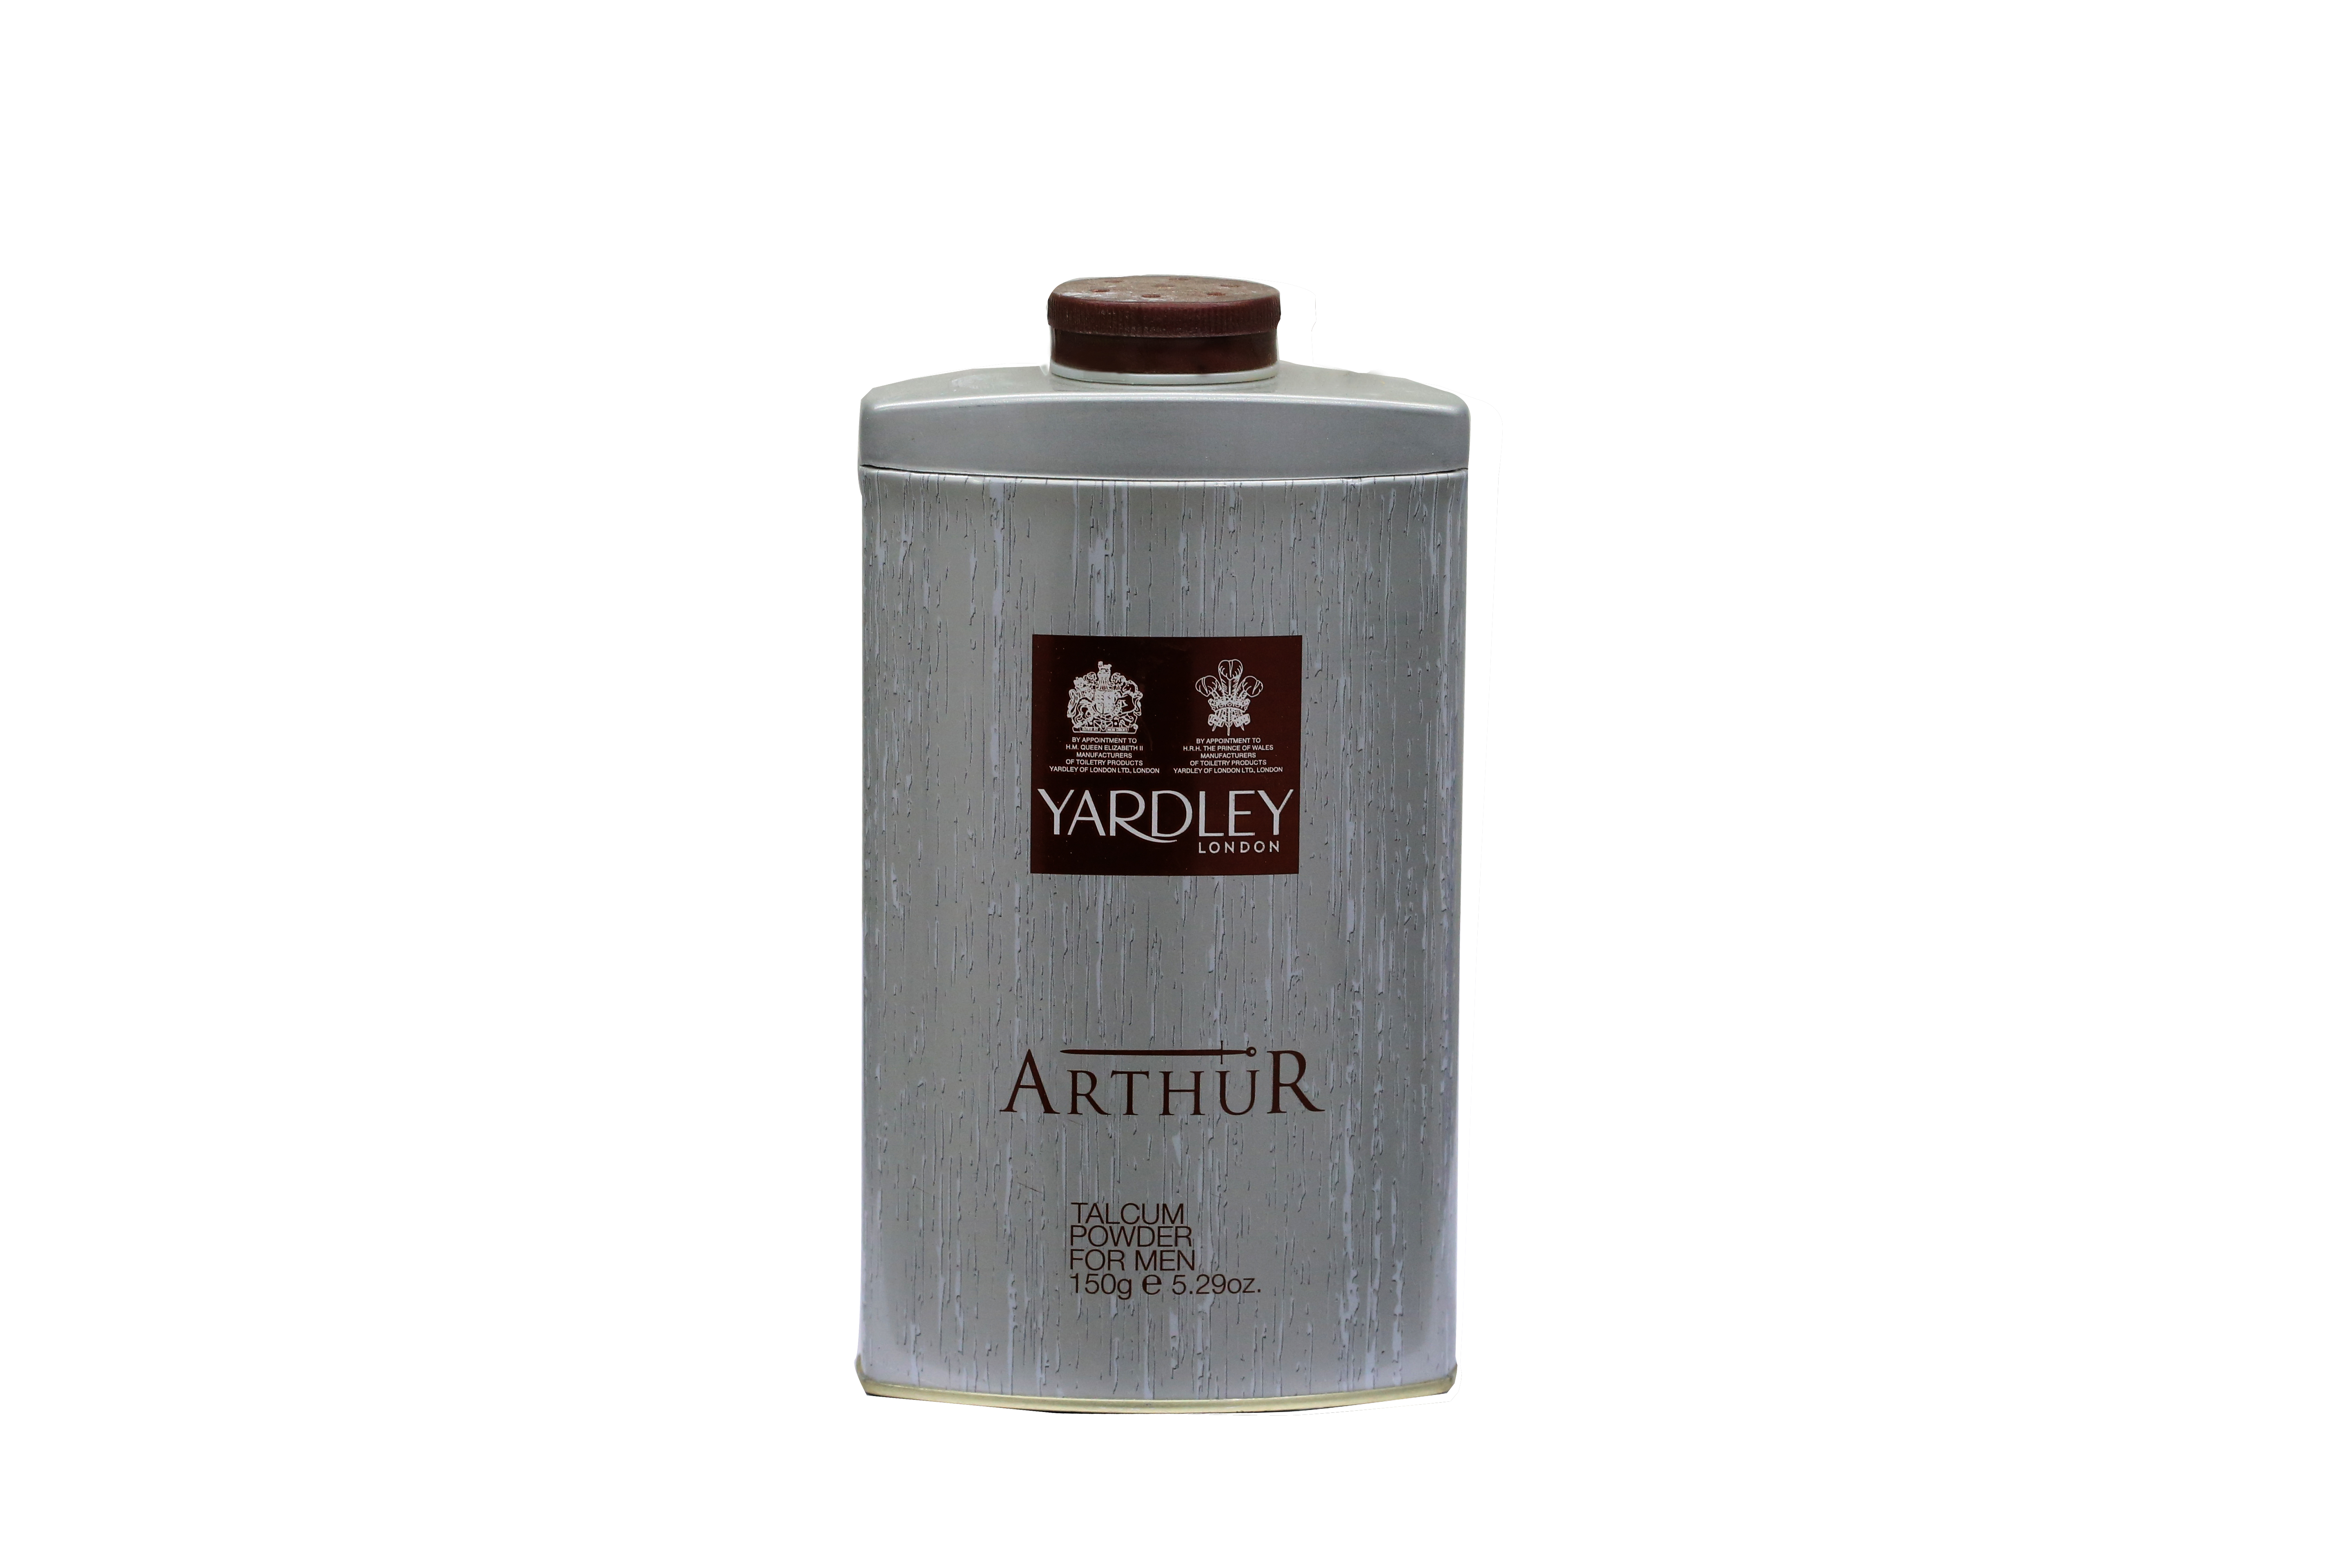 Yardley Arthur Talcum Powder 150gm